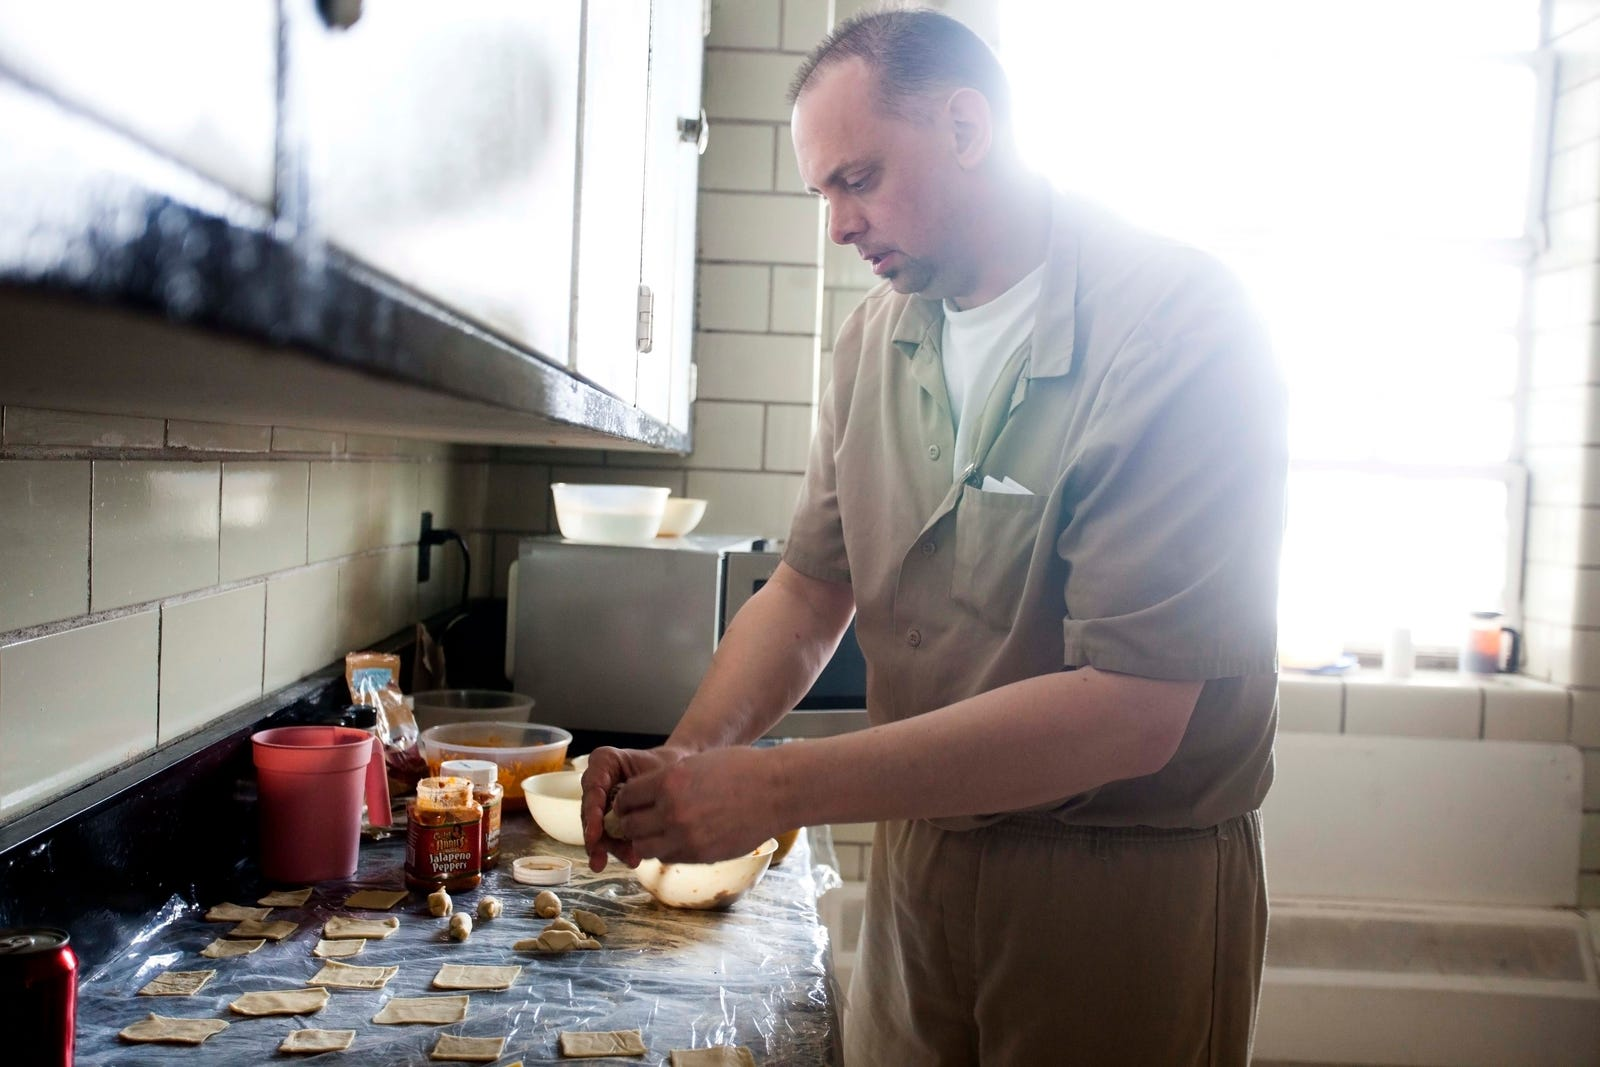 Fixed Menu: Meet the cellblock chefs of Westville Correctional Facility